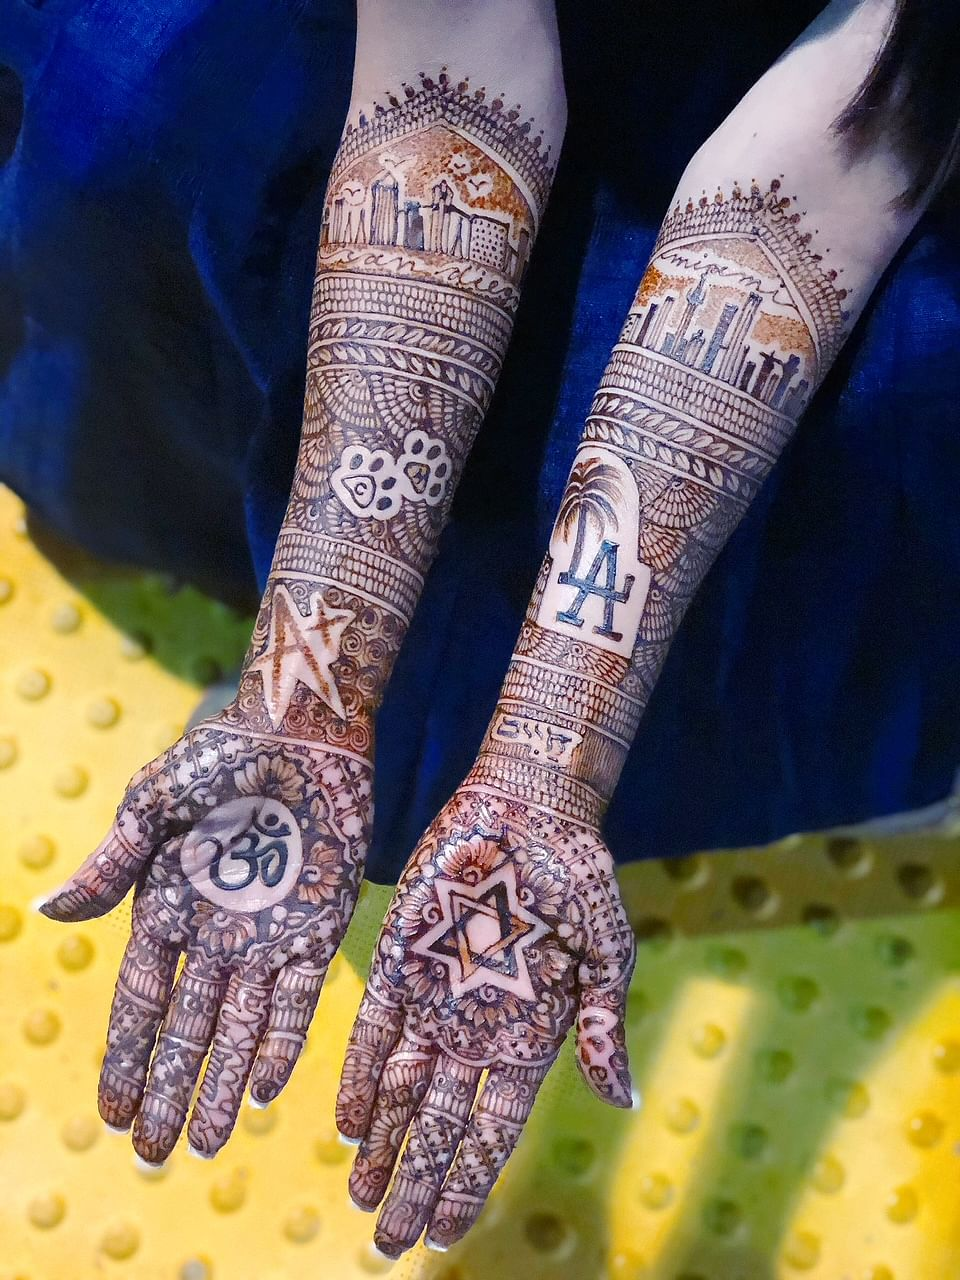 Henna capturing the coming together of a Hindu bride and Jewish groom.